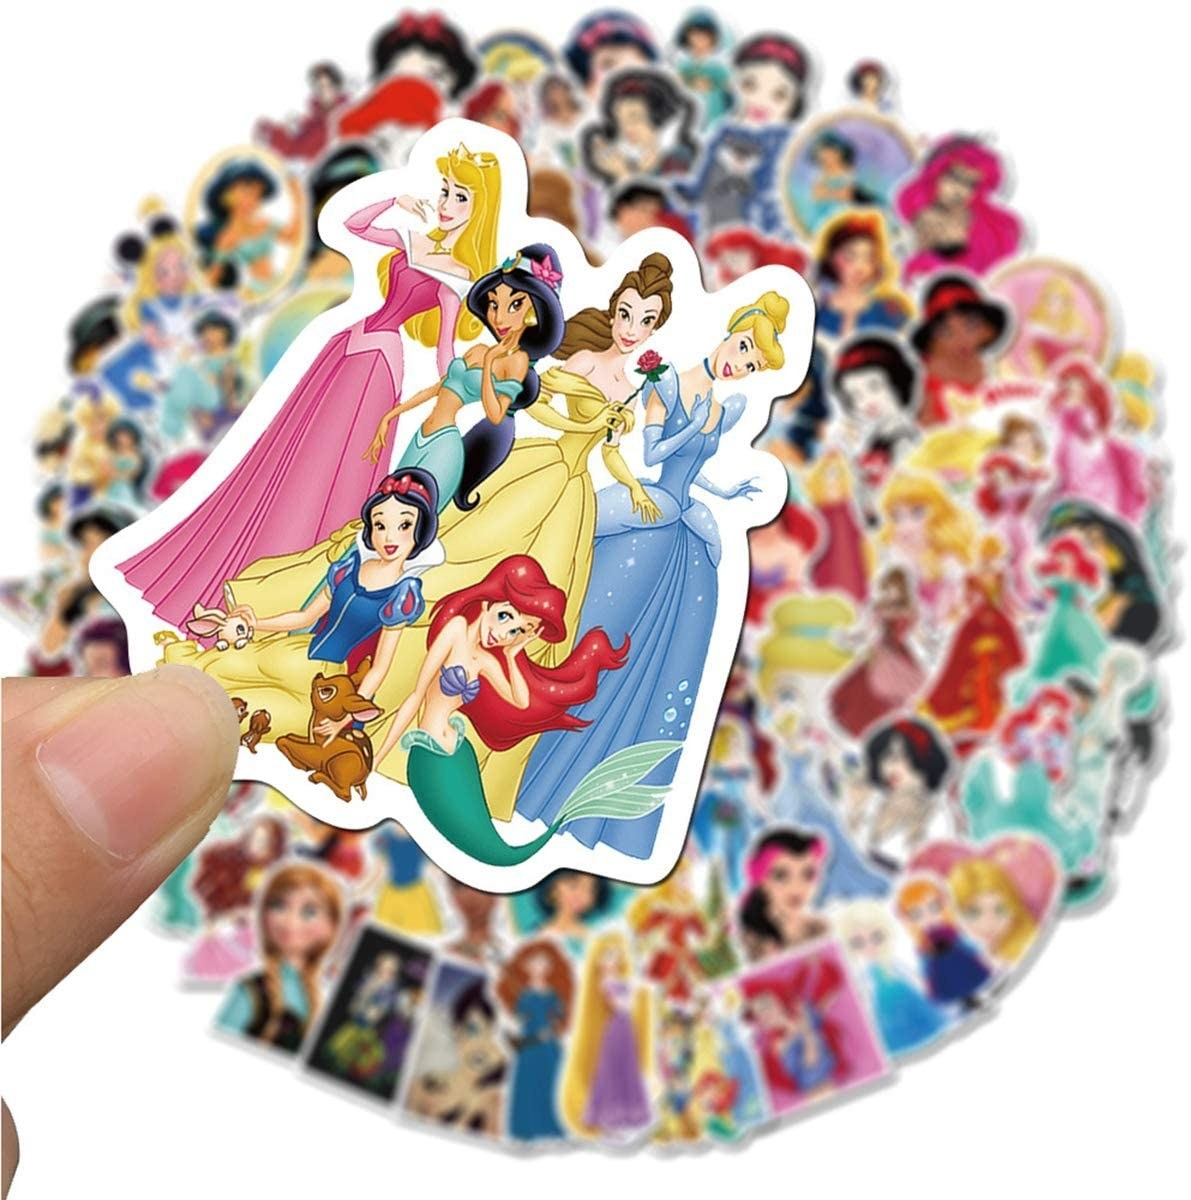 a model holding up a sticker of all the disney princesses over a pile of stickers